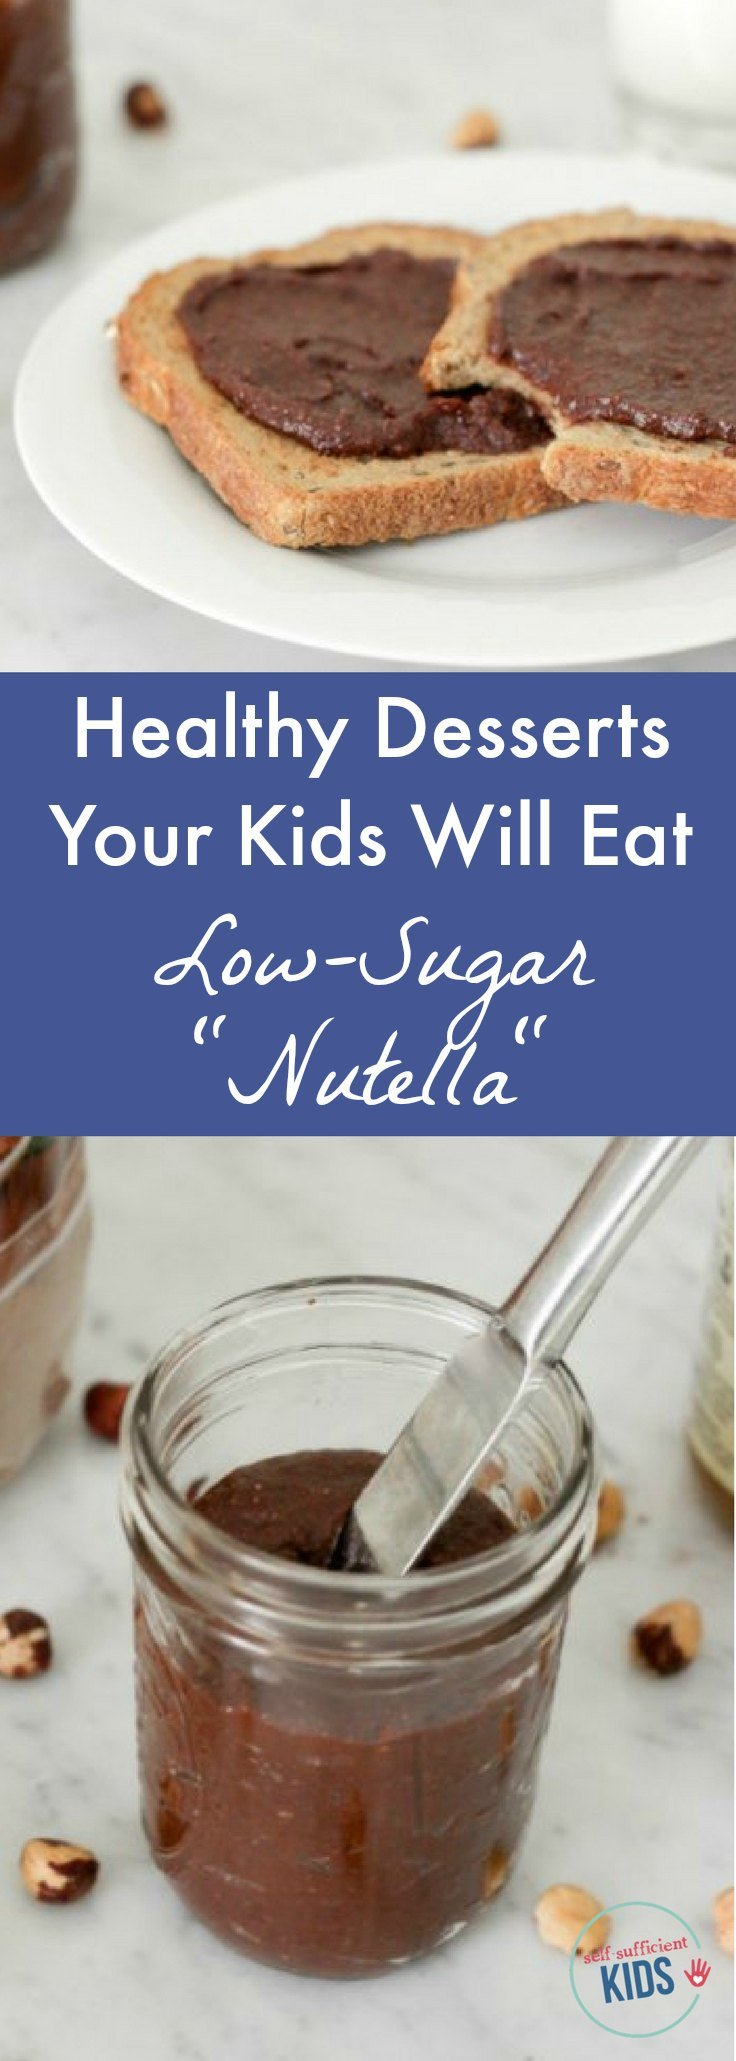 "Healthy Desserts Your Kids Will Eat - Low-Sugar ""Nutella"": What kid doesn't love Nutella? Now you can feel good about serving this beloved hazelnut chocolate spread with a low-sugar, more nutritious recipe."